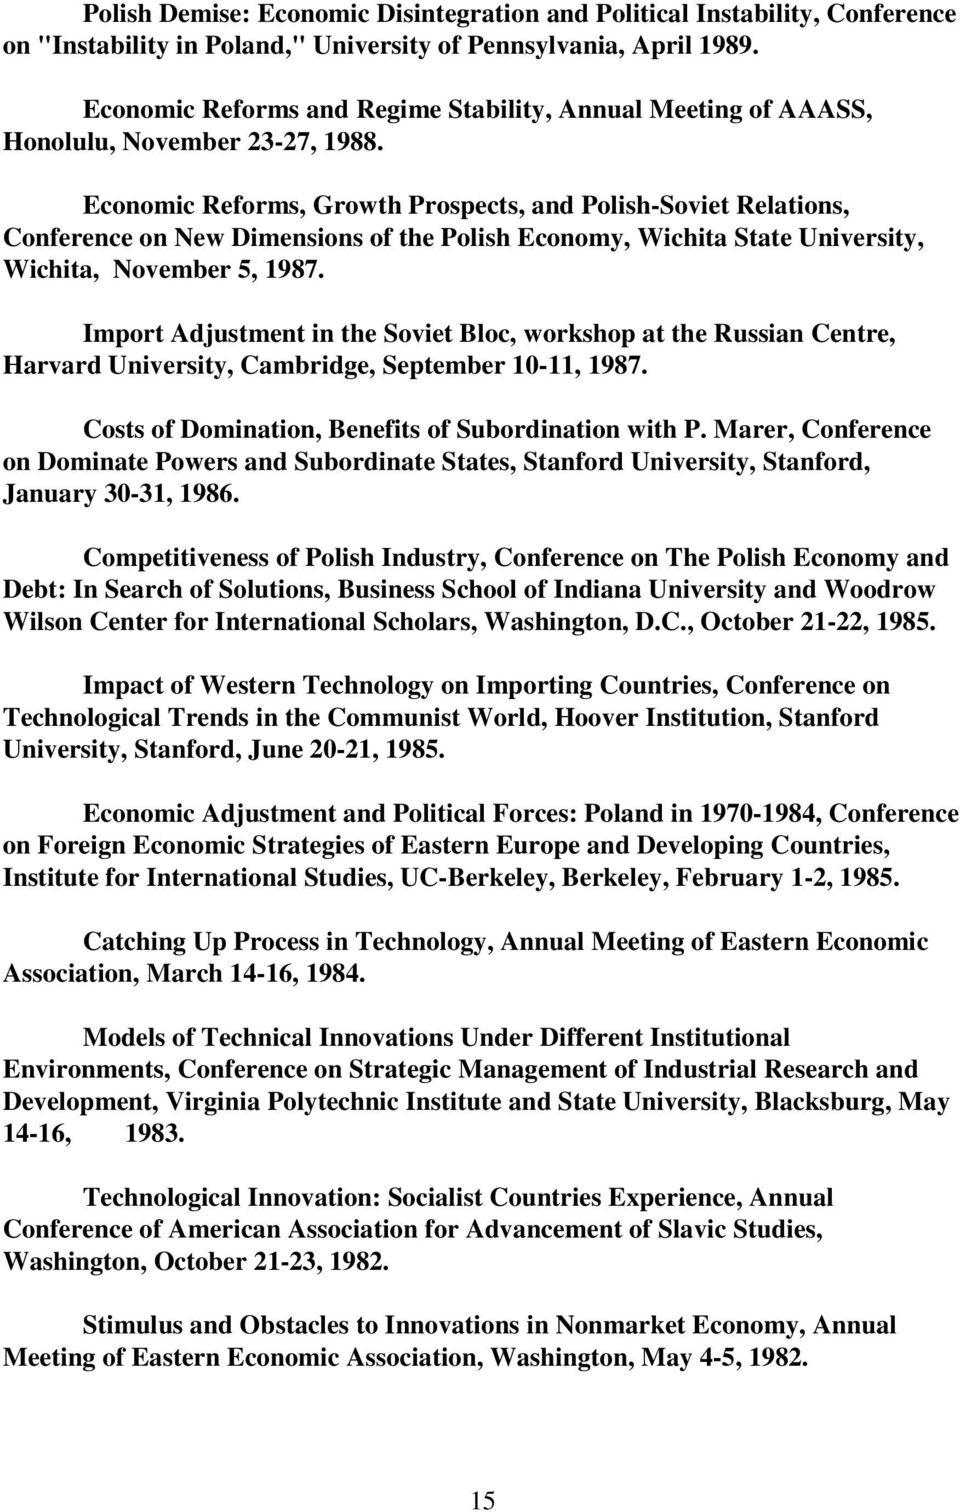 Economic Reforms, Growth Prospects, and Polish-Soviet Relations, Conference on New Dimensions of the Polish Economy, Wichita State University, Wichita, November 5, 1987.